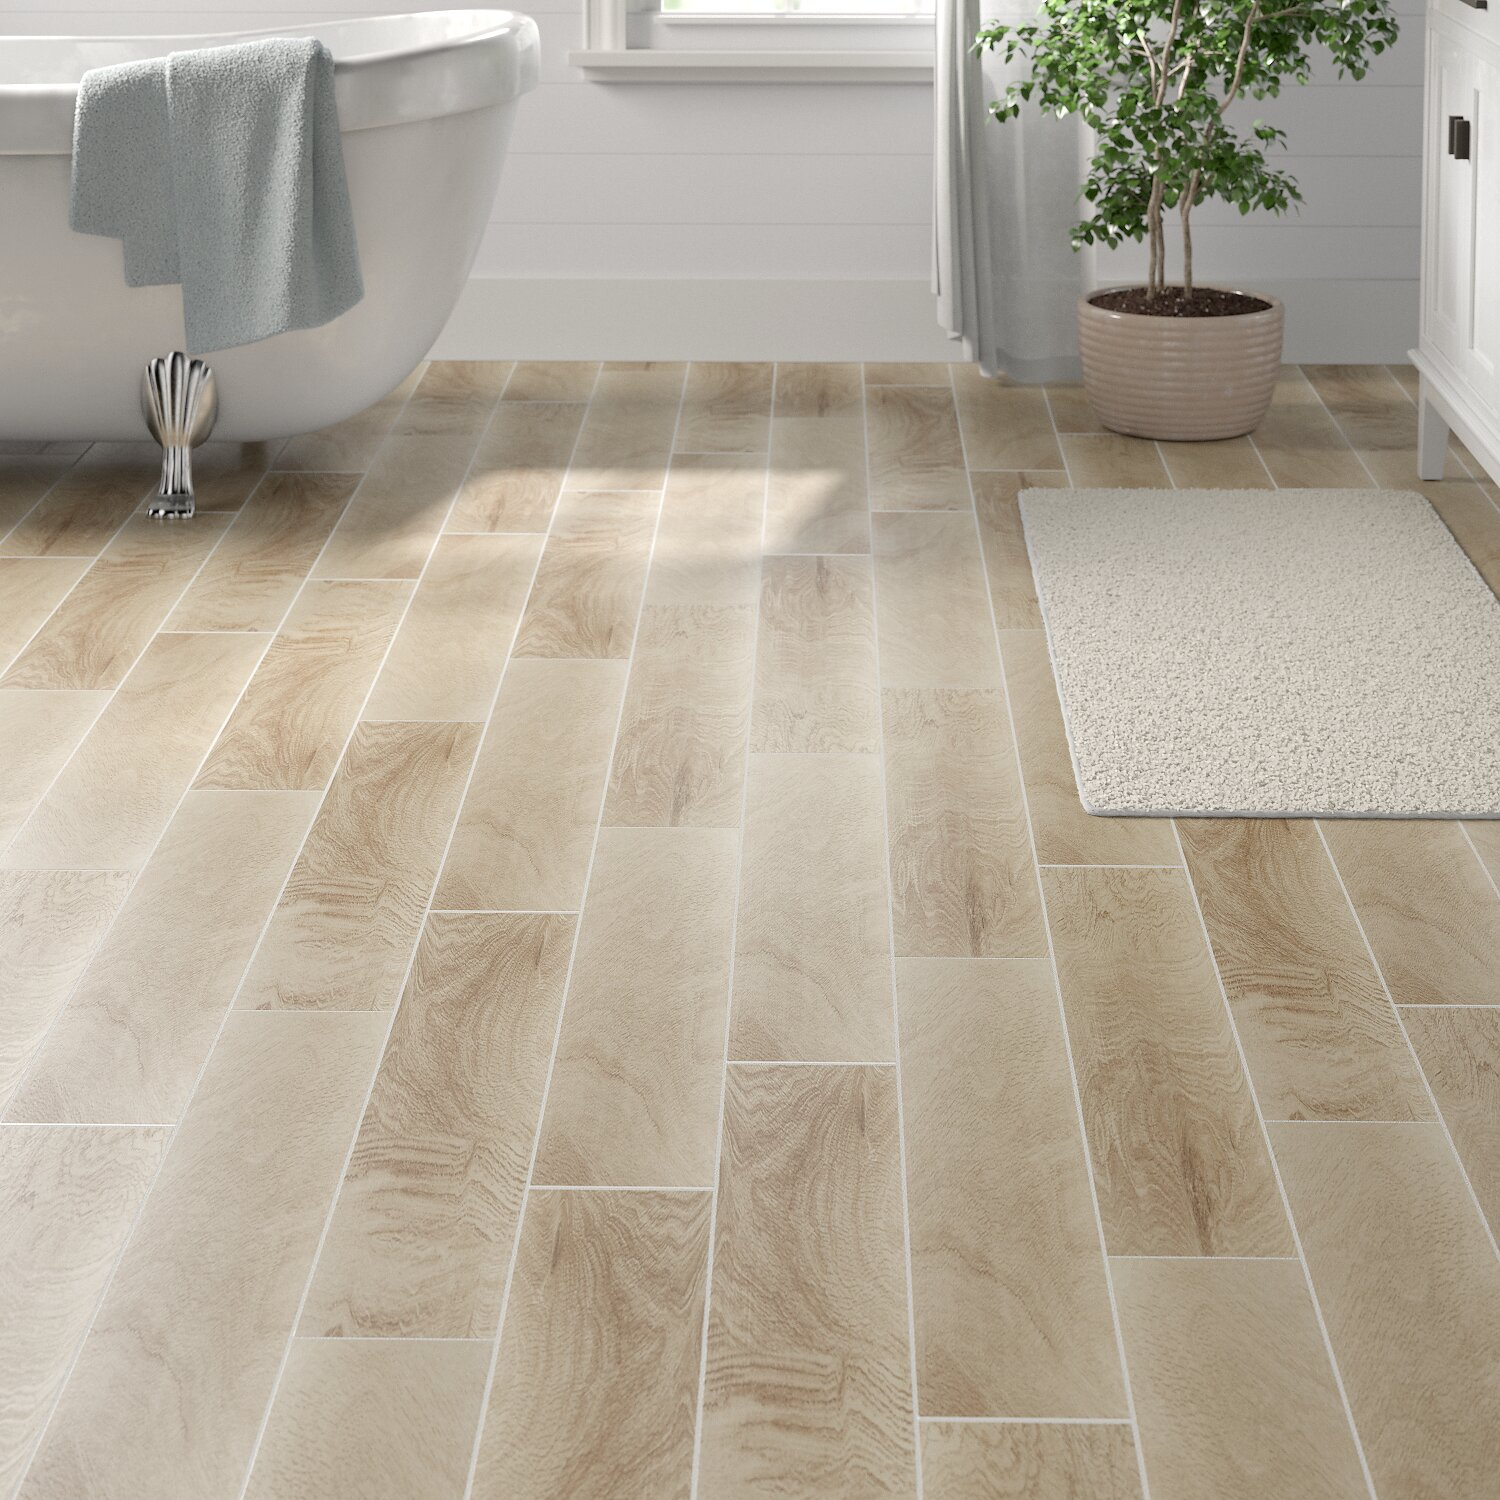 Itona Tile Hereford 6 X 36 Porcelain Wood Look Tile Reviews